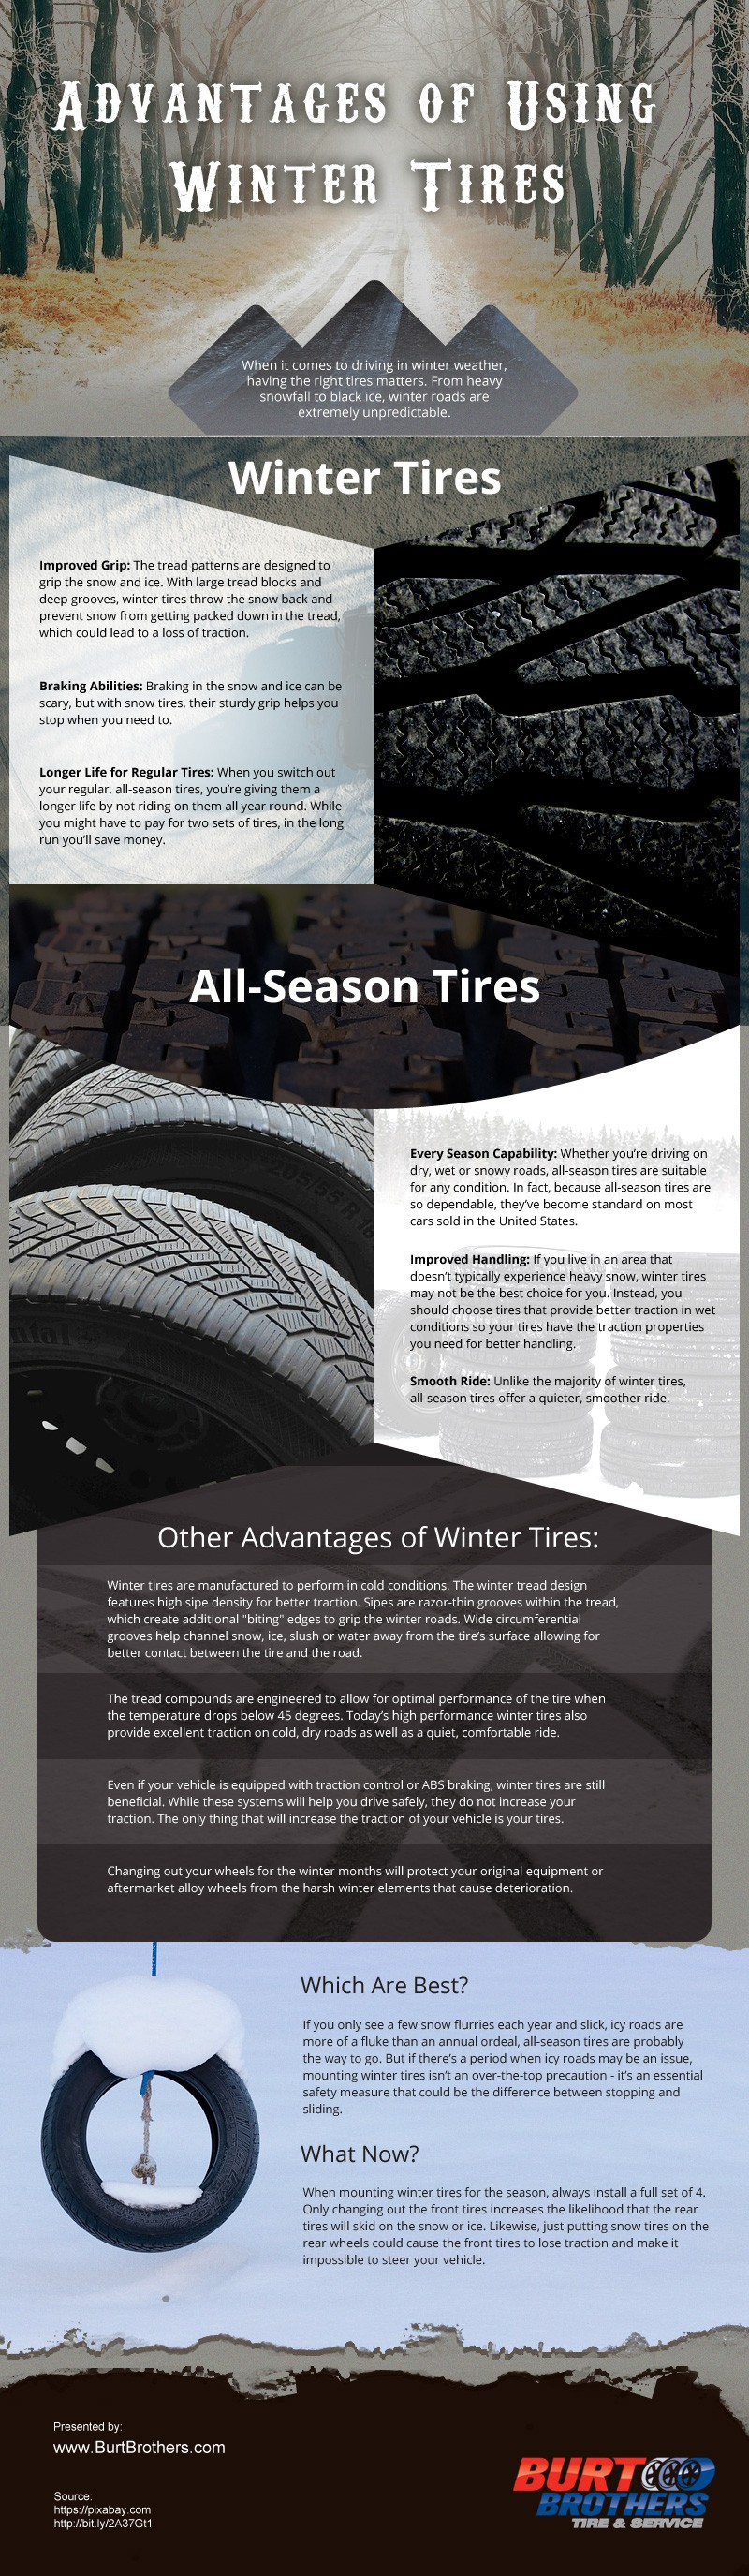 Advantages-of-Using-Winter-Tires Infographic